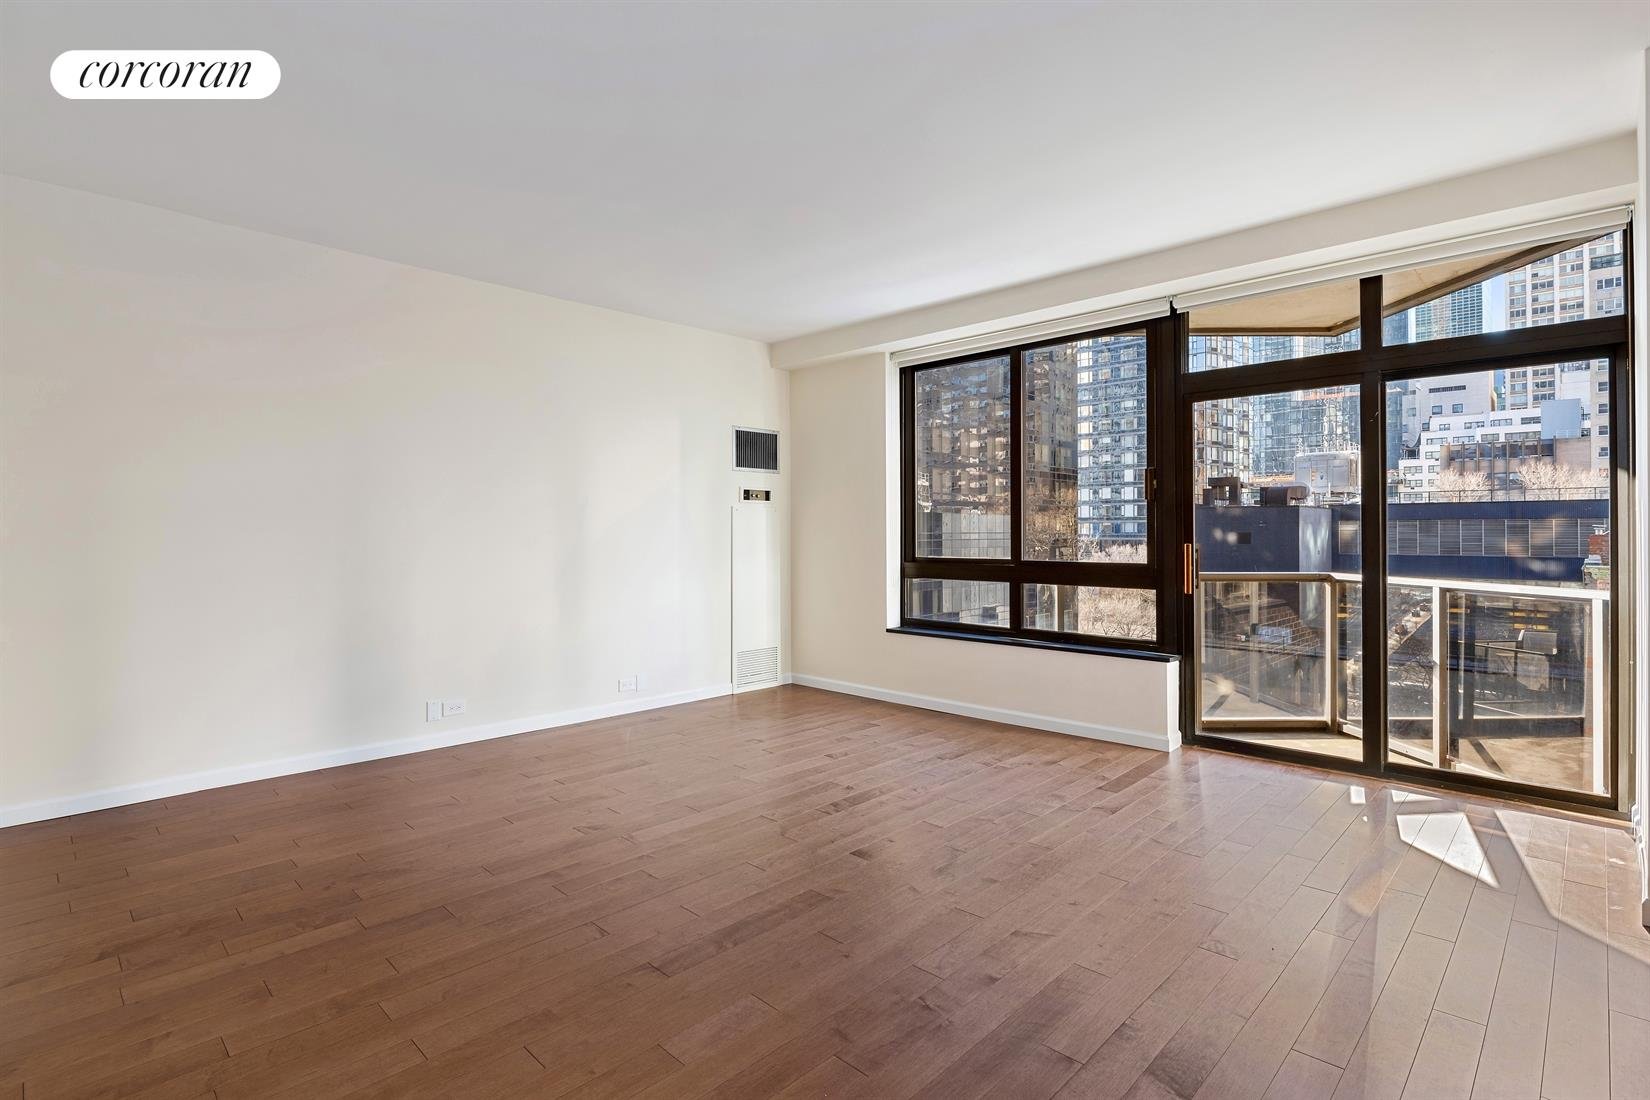 Spacious and sunlit renovated south-facing 1 bedroom, 1 bathroom with private balcony now available for rent at 100 United Nations Plaza.Be the first to occupy this newly updated unit that offers 9 ceilings, oversized windows, fantastic natural light and a private balcony off the living room. Upgrades include new wood floors throughout, renovated kitchen with brand new cabinets, Caesarstone counters, beveled subway tile backsplash, and new floors.  Stainless steel appliances from Sub-Zero and GE that include a dishwasher and microwave. The large living room enjoys warm southern light, has brand new solar shades, and will comfortably accommodate separate living and dining areas. The king-sized bedroom has new blackout roller shades and a large closet, while the marble bathroom features a Jacuzzi bathtub. Additional features include central heat and A/C and newly outfitted closets throughout. Located on East 48th Street and First Avenue, 100 United Nations Plaza is a white-glove, full service condominium located in Manhattan's Turtle Bay neighborhood. Greeting residents with beautifully landscaped gardens and waterfalls, this impeccably run building offers a 24-hour doorman, valet and concierge service, on-site management office, renovated lobby and resident's lounge, common laundry room, fitness center and direct access to a 24-hour attended parking garage. Conveniently located to transportation and many great shops and restaurants. Showing by appointment only. Condominium application required. Sorry, no pets allowed.